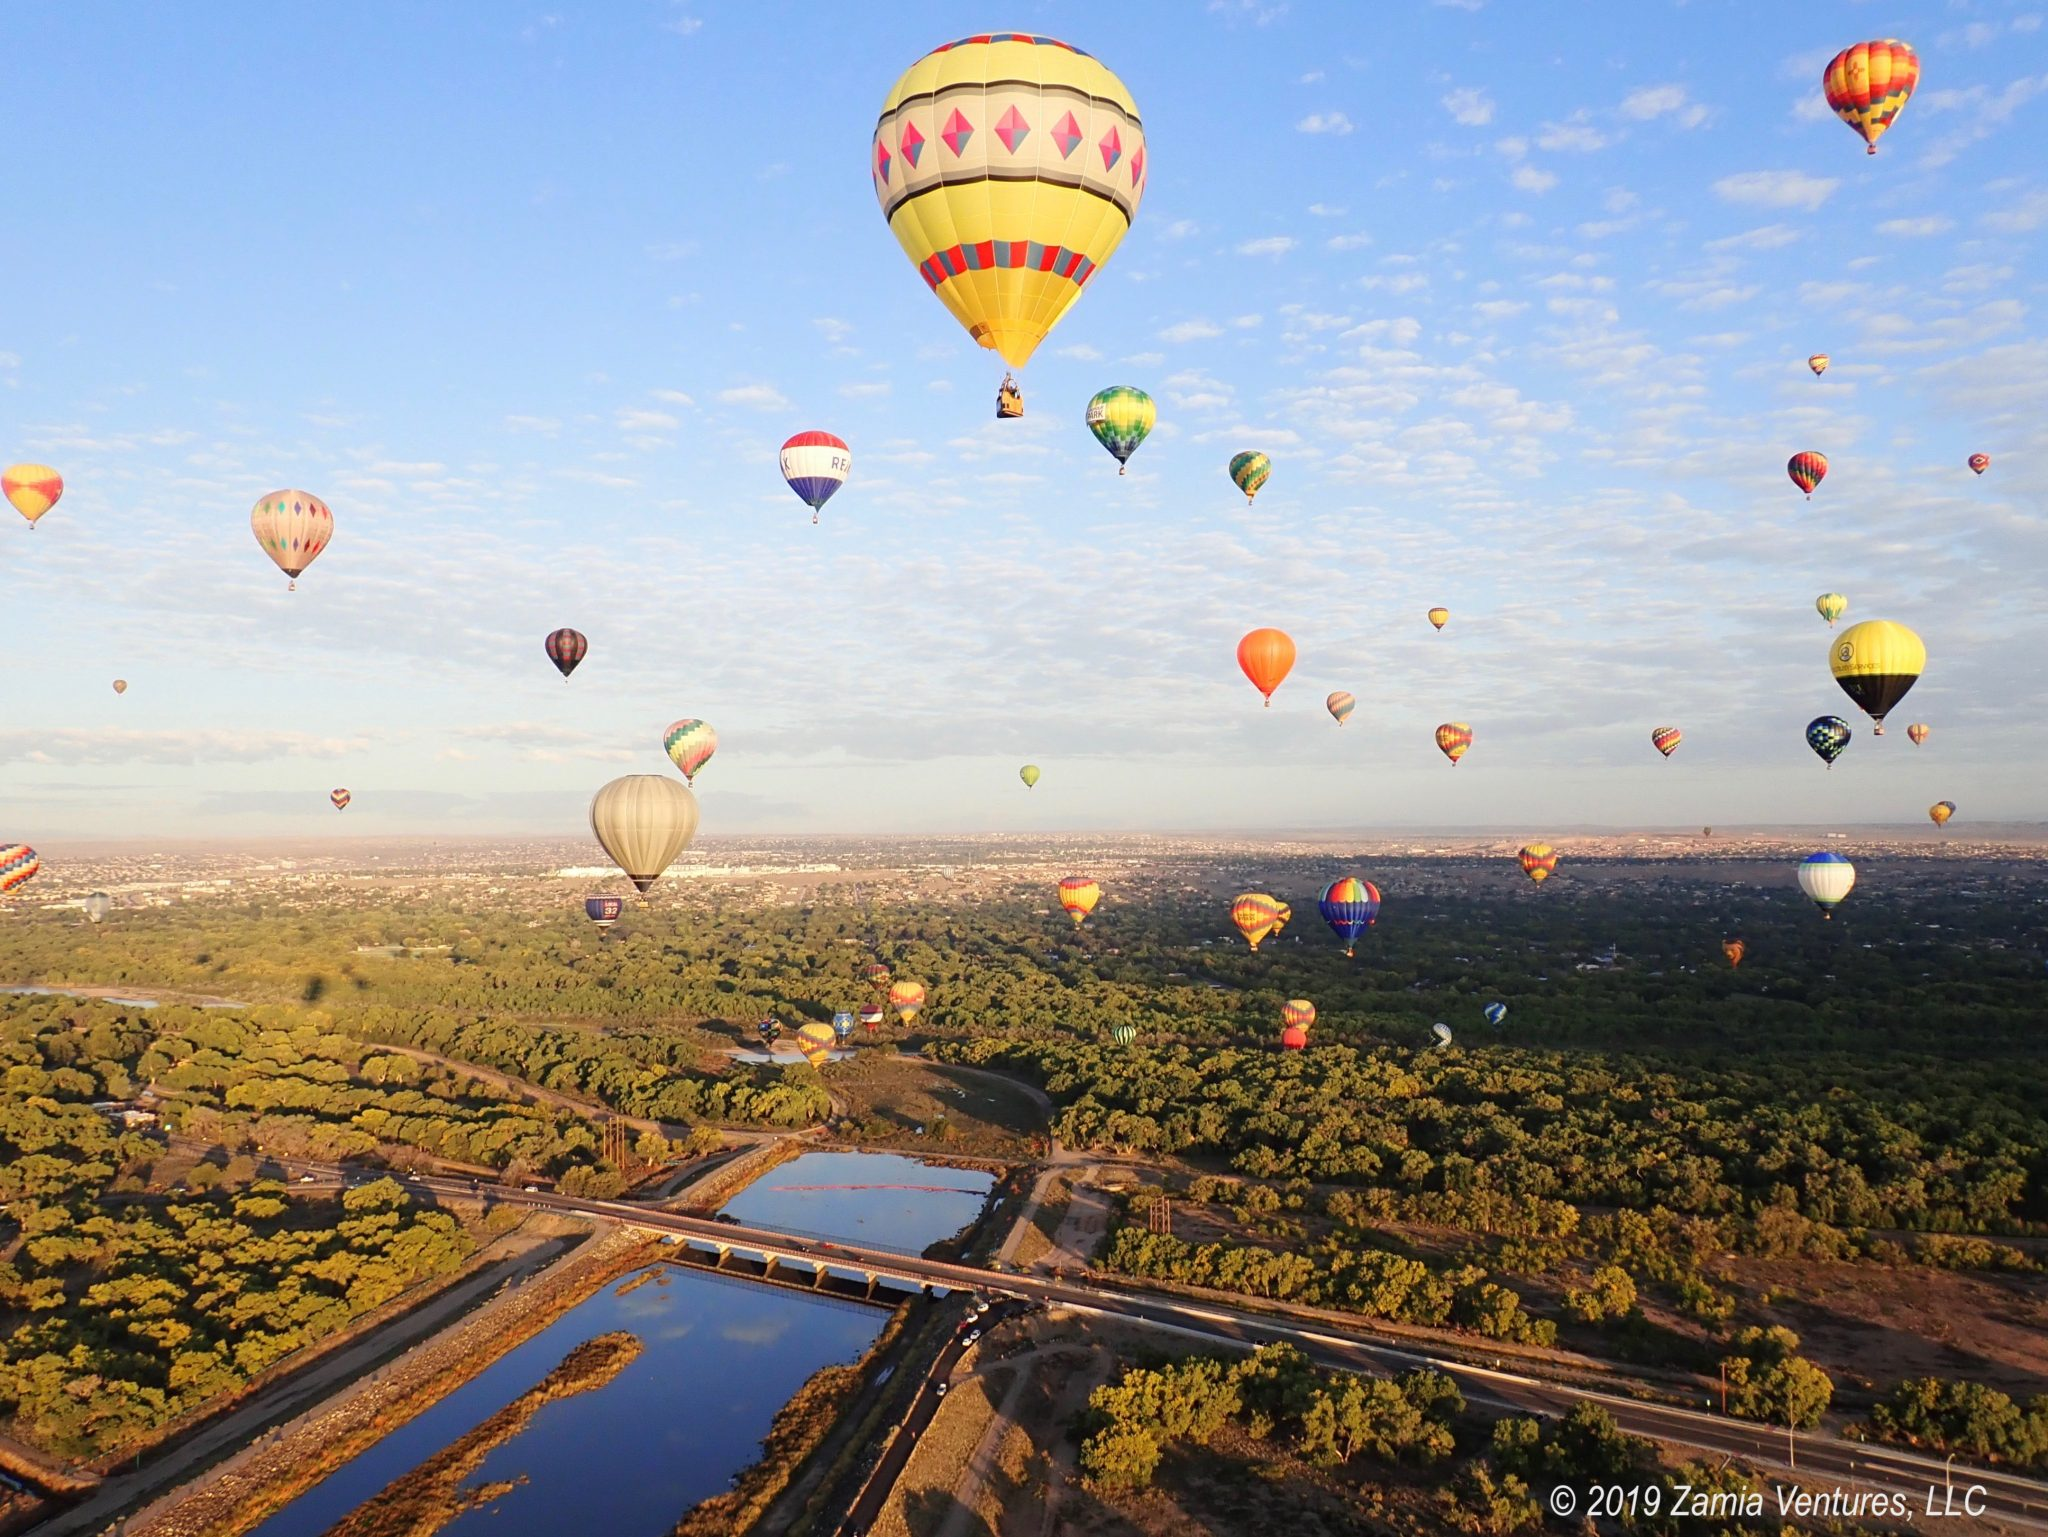 The Best of Times and the Worst of Times at Balloon Fiesta